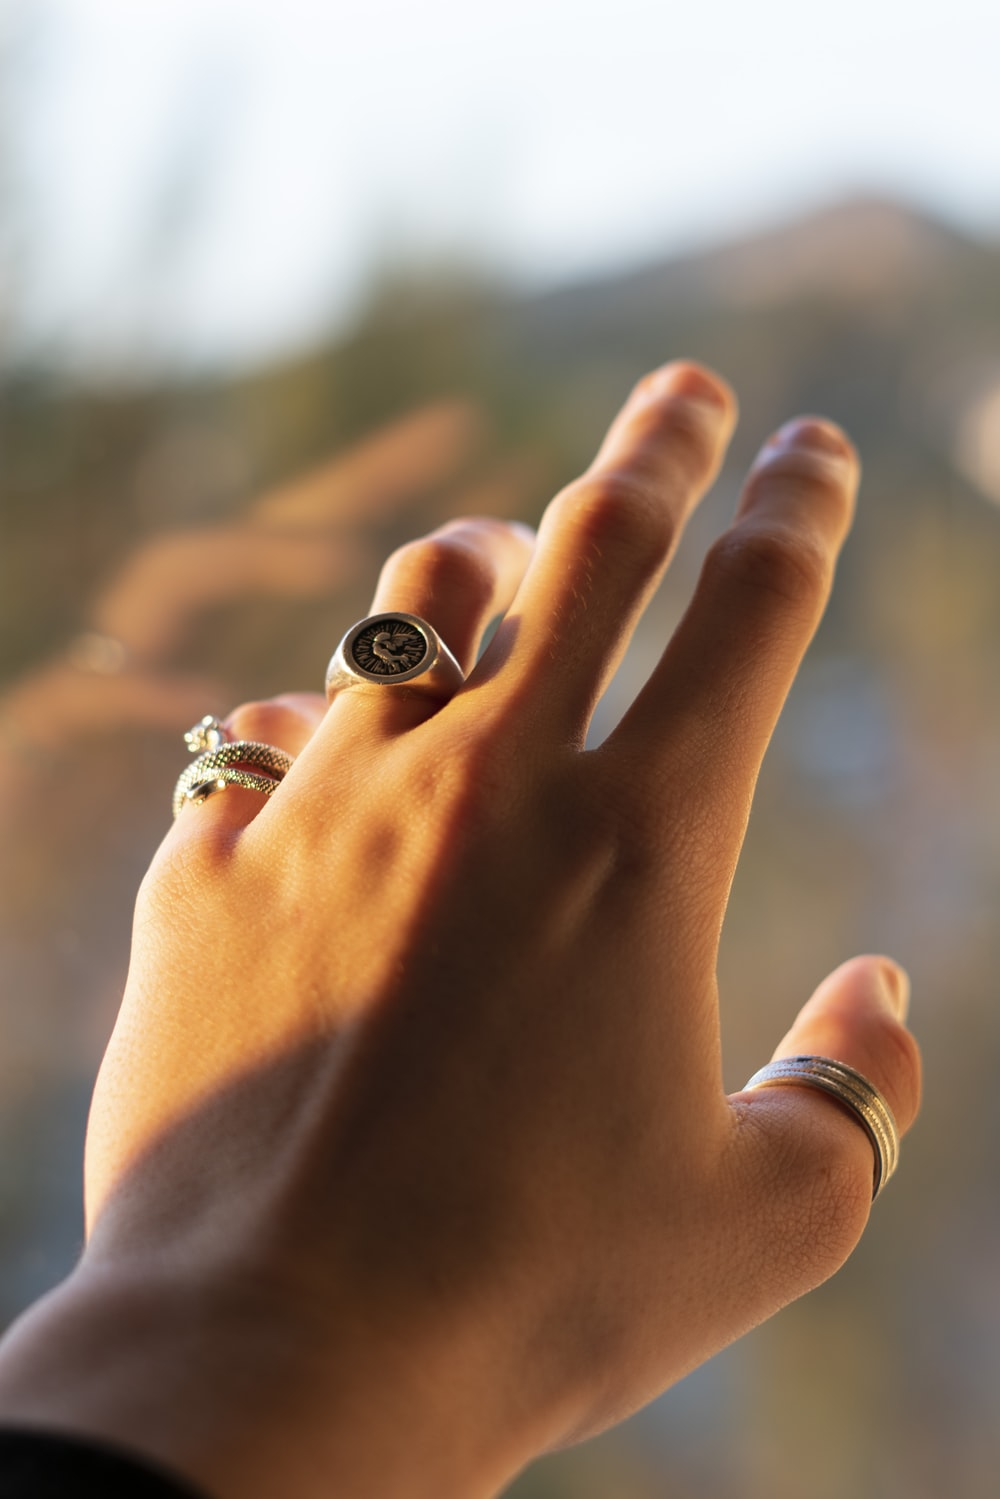 person wearing silver and black ring